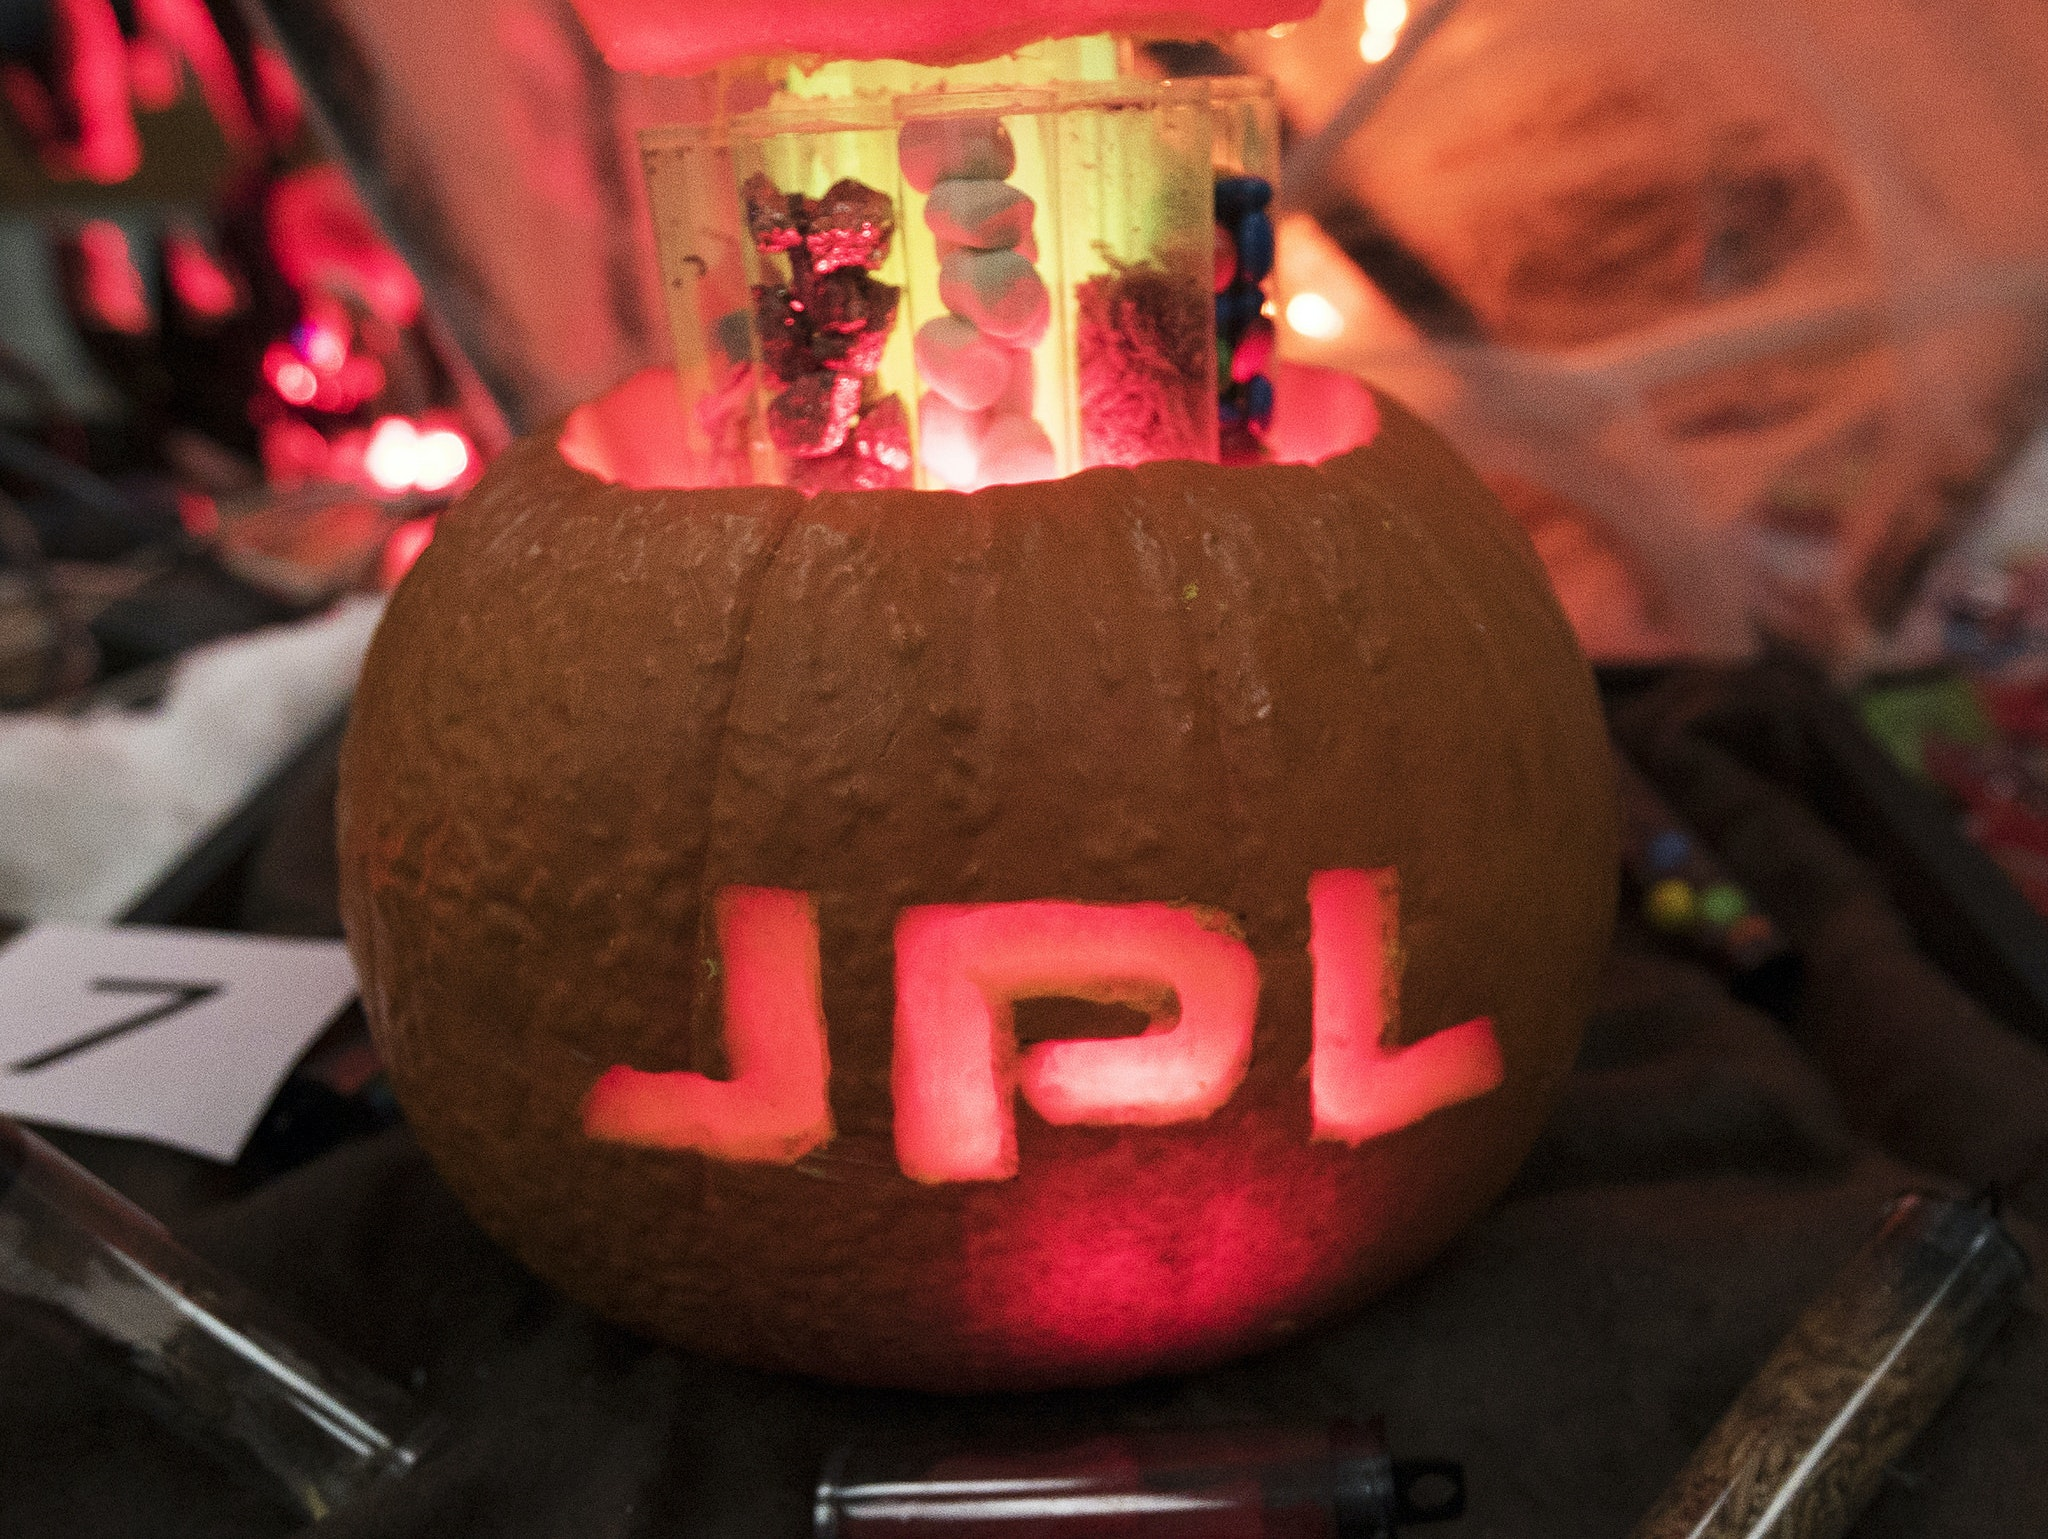 NASA has the right stuff when it comes to carving pumpkins.